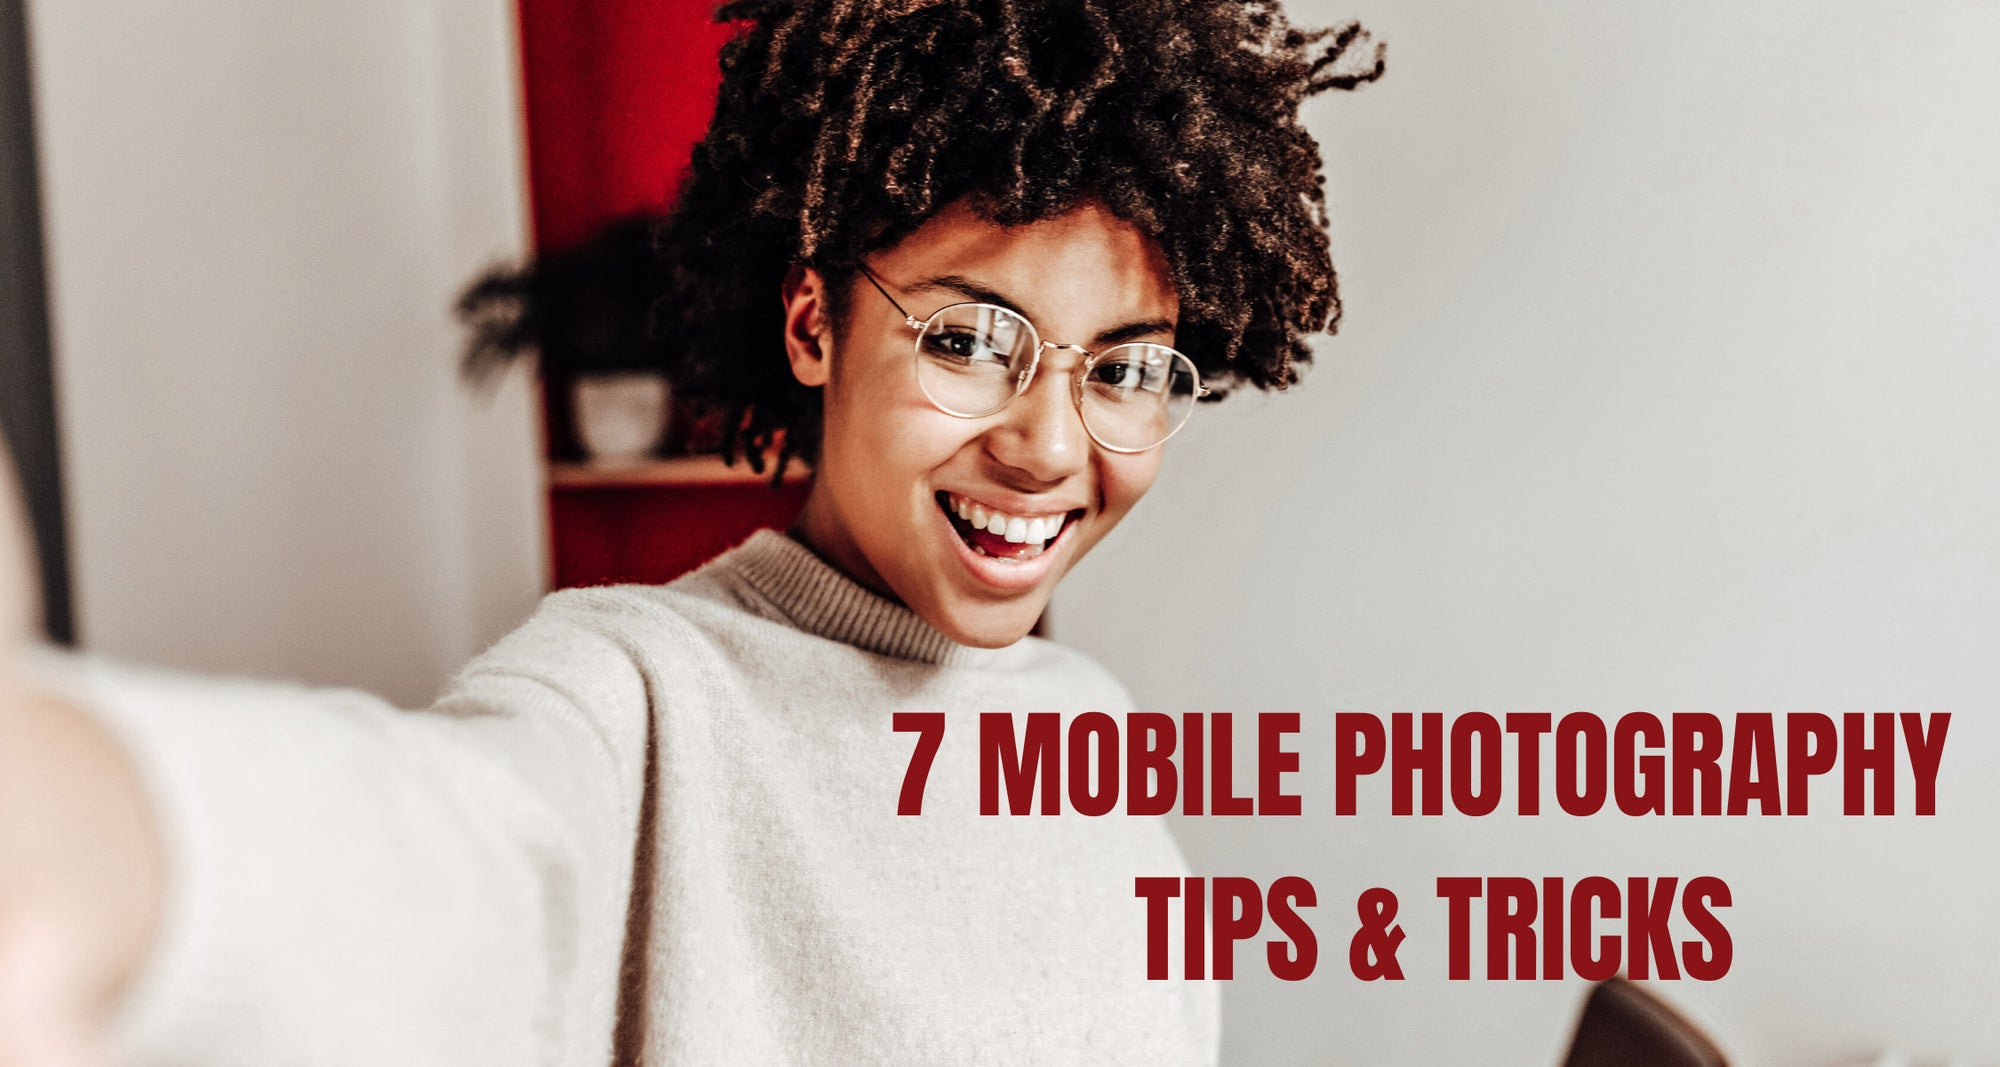 7 MOBILE PHOTOGRAPHY TIPS AND TRICKS